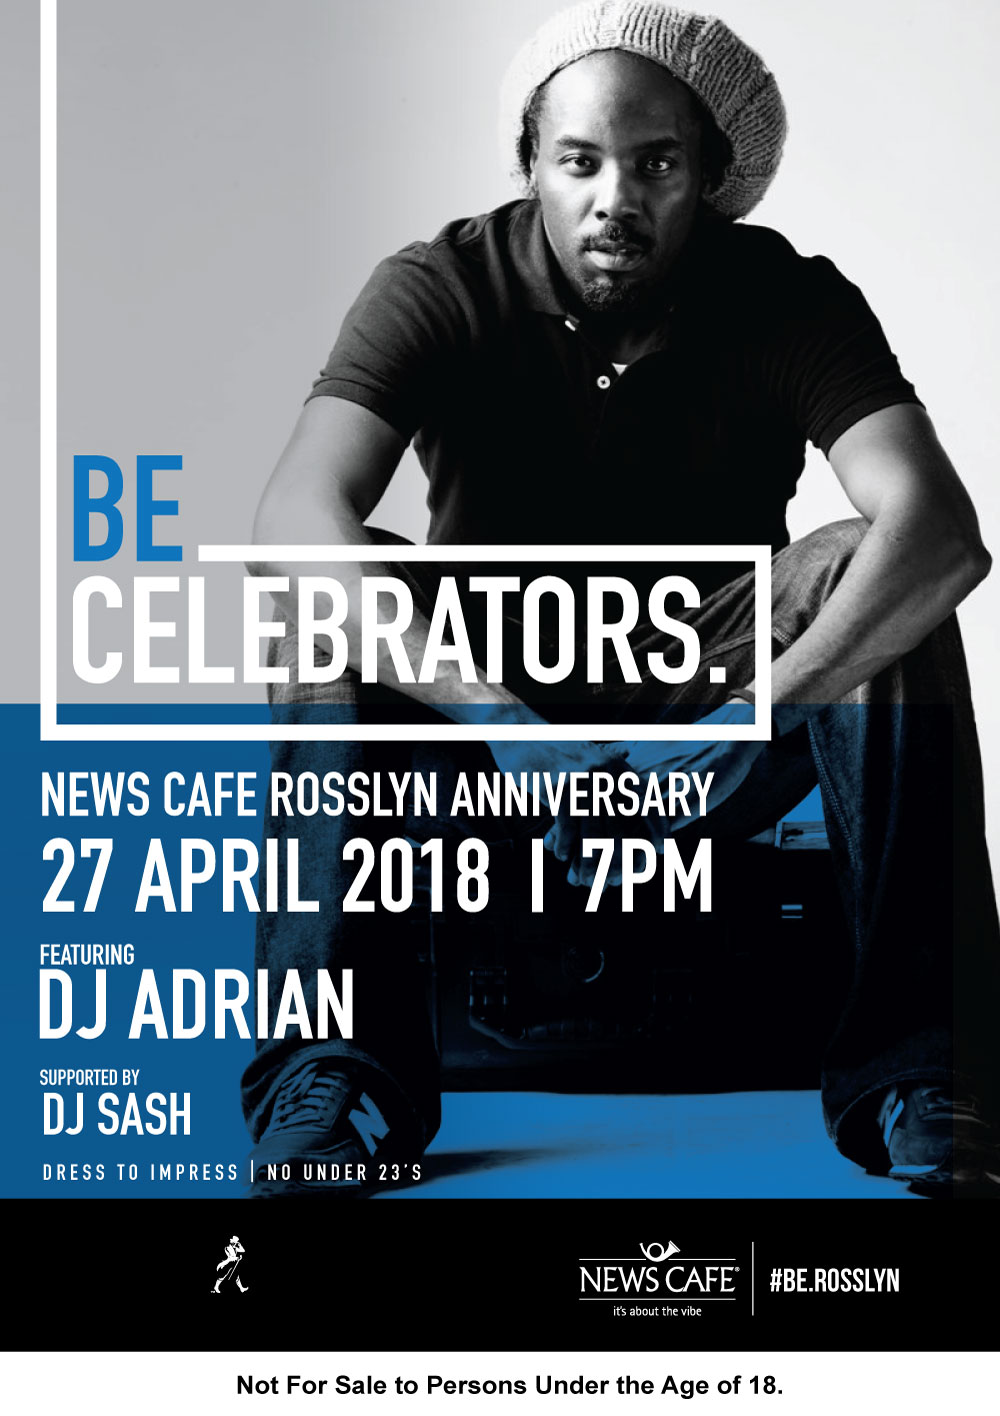 News Cafe Rosslyn Anniversary Party with DJ Adrian